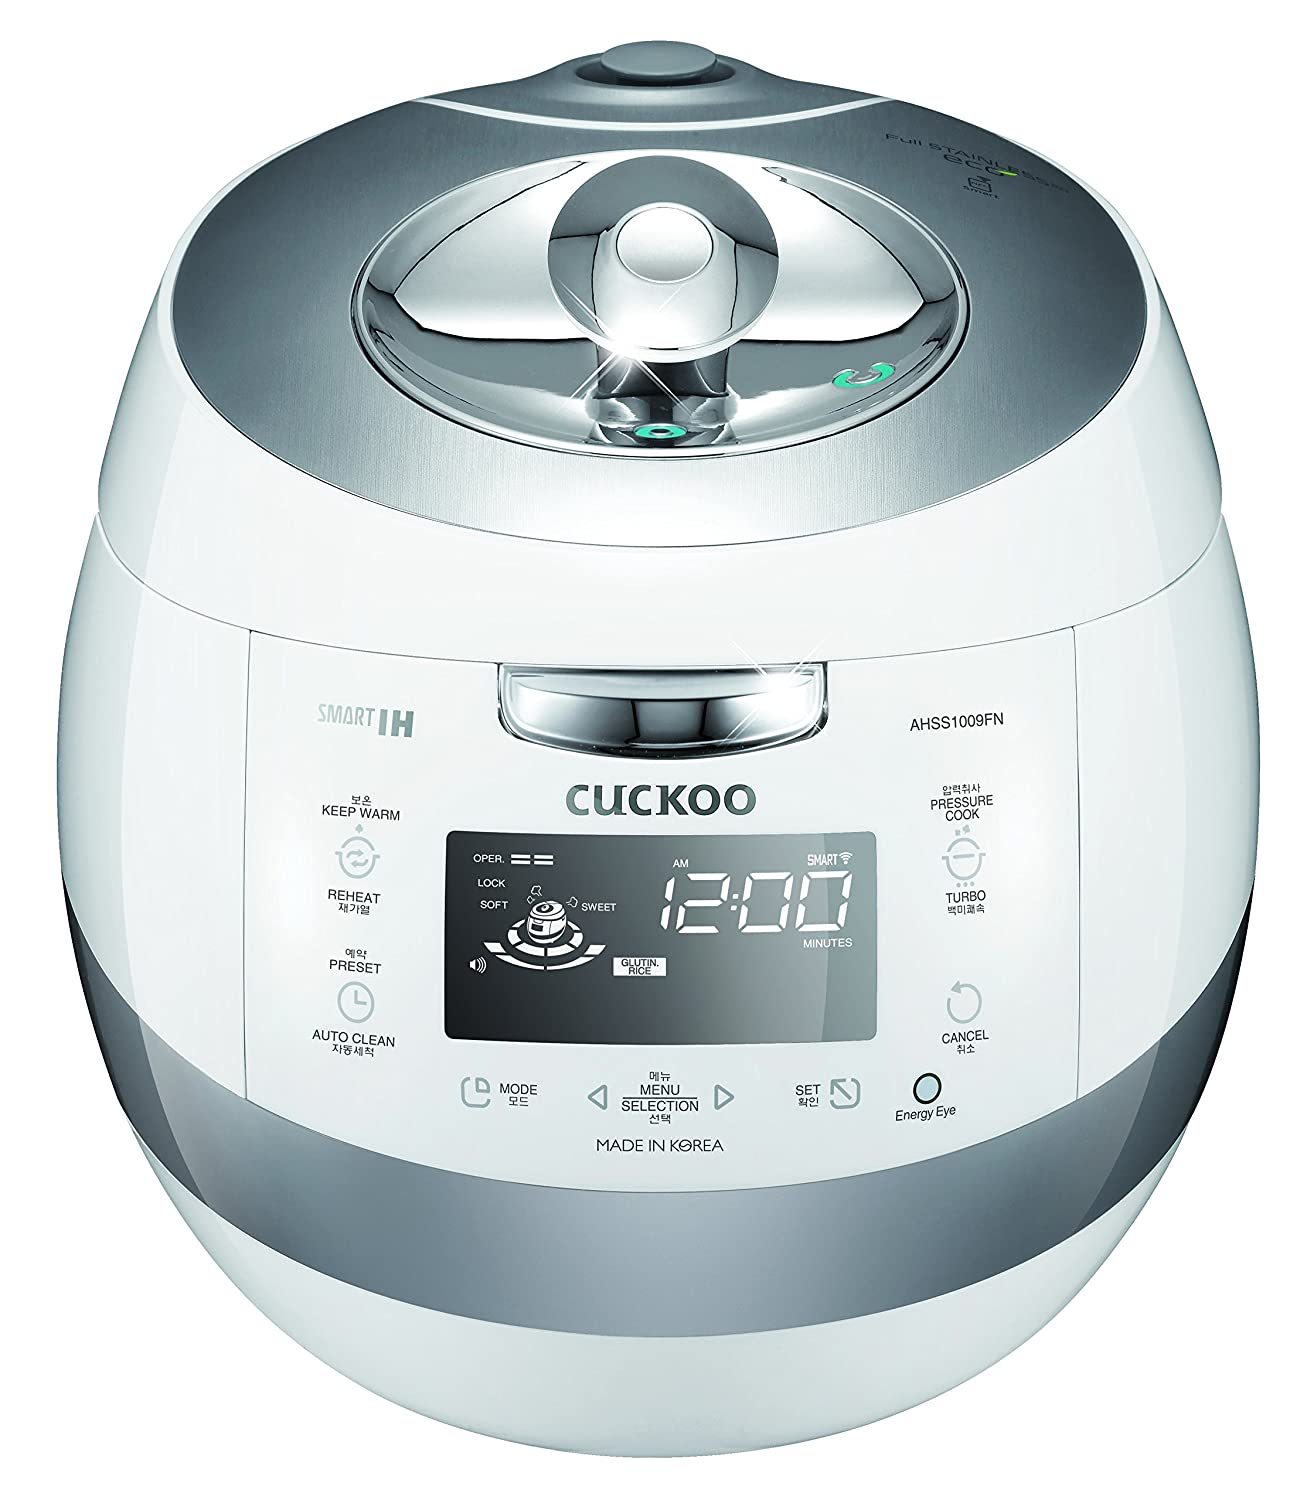 Cuckoo CRP-AHSS1009FN Pressure Rice Cooker 5 Liters / 5.3 Quarts White